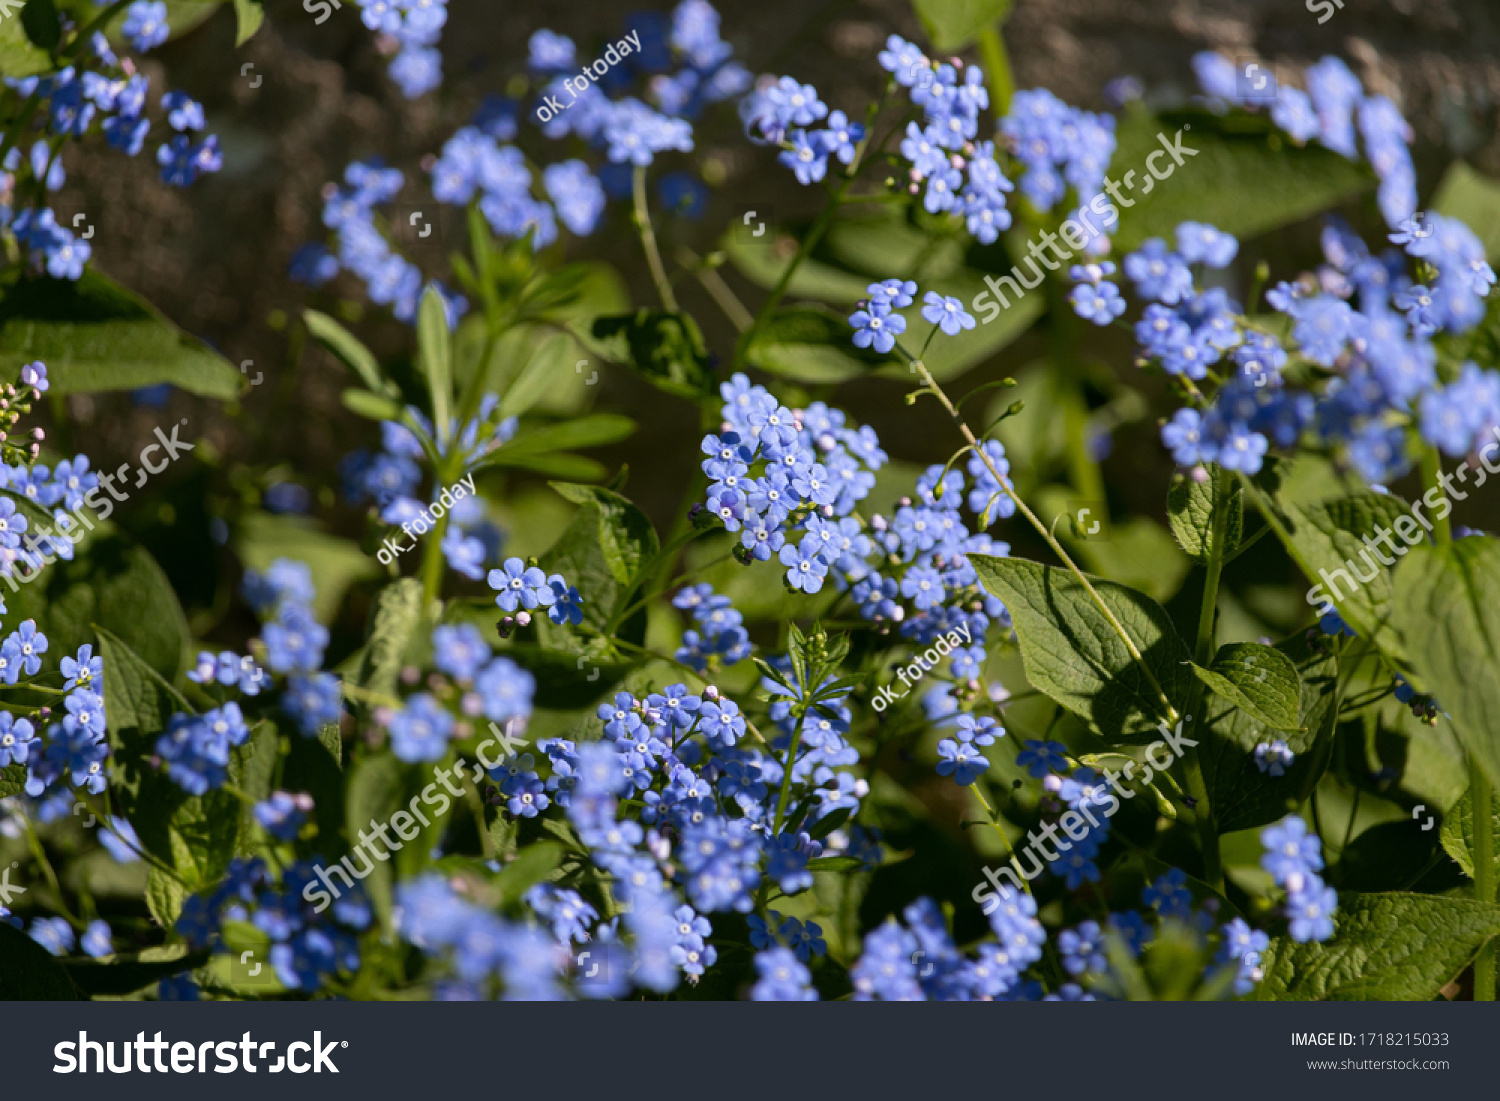 Beautiful floral background with blue flowers of Siberian forget-me-not